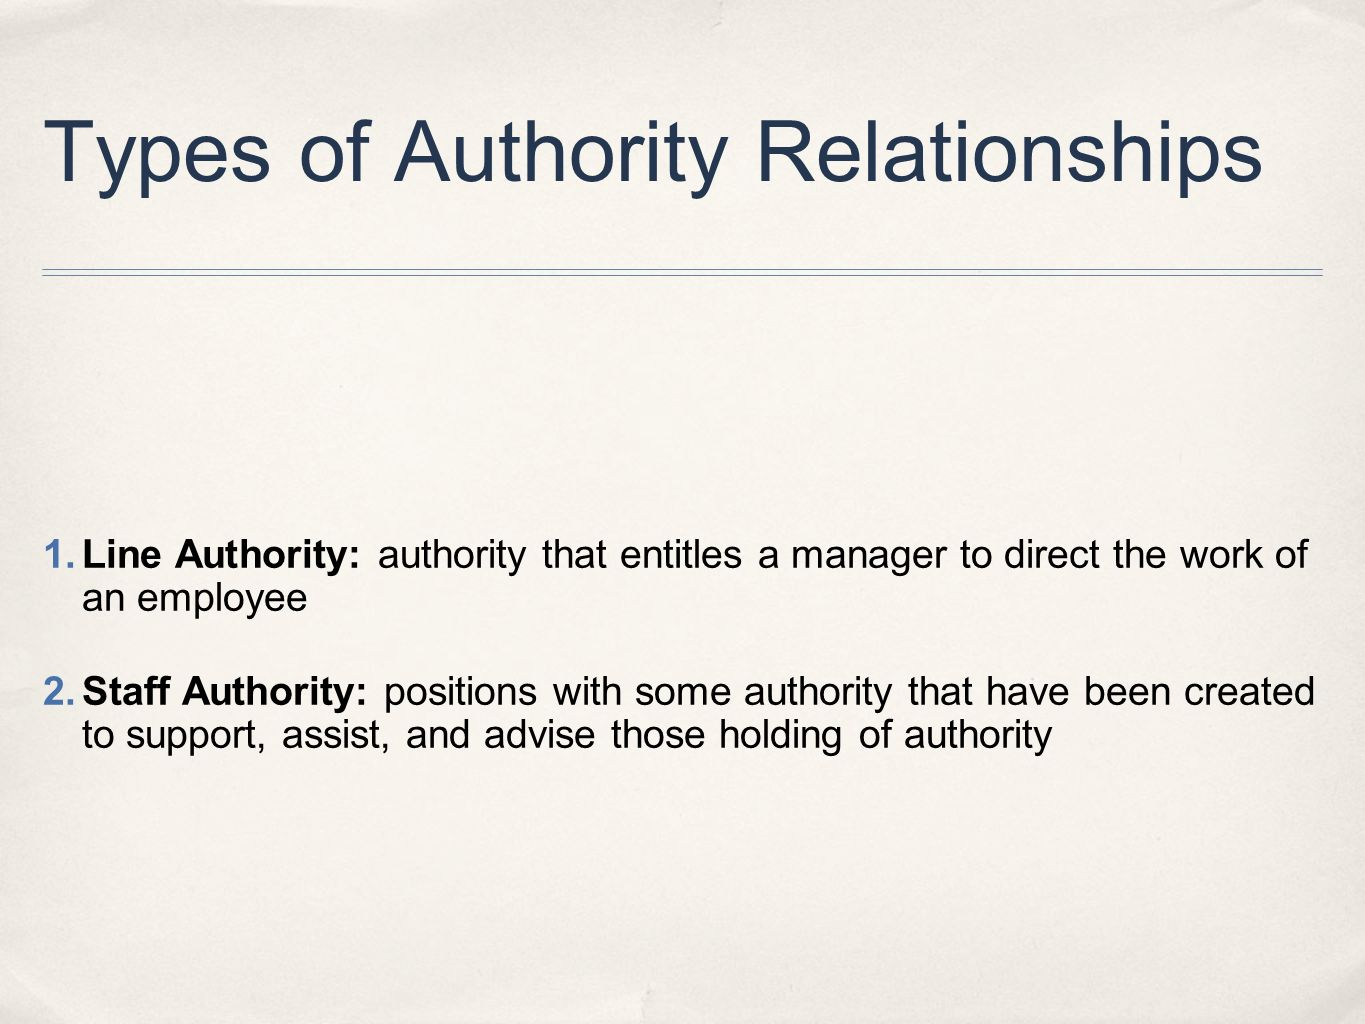 Types of Authority Relationships